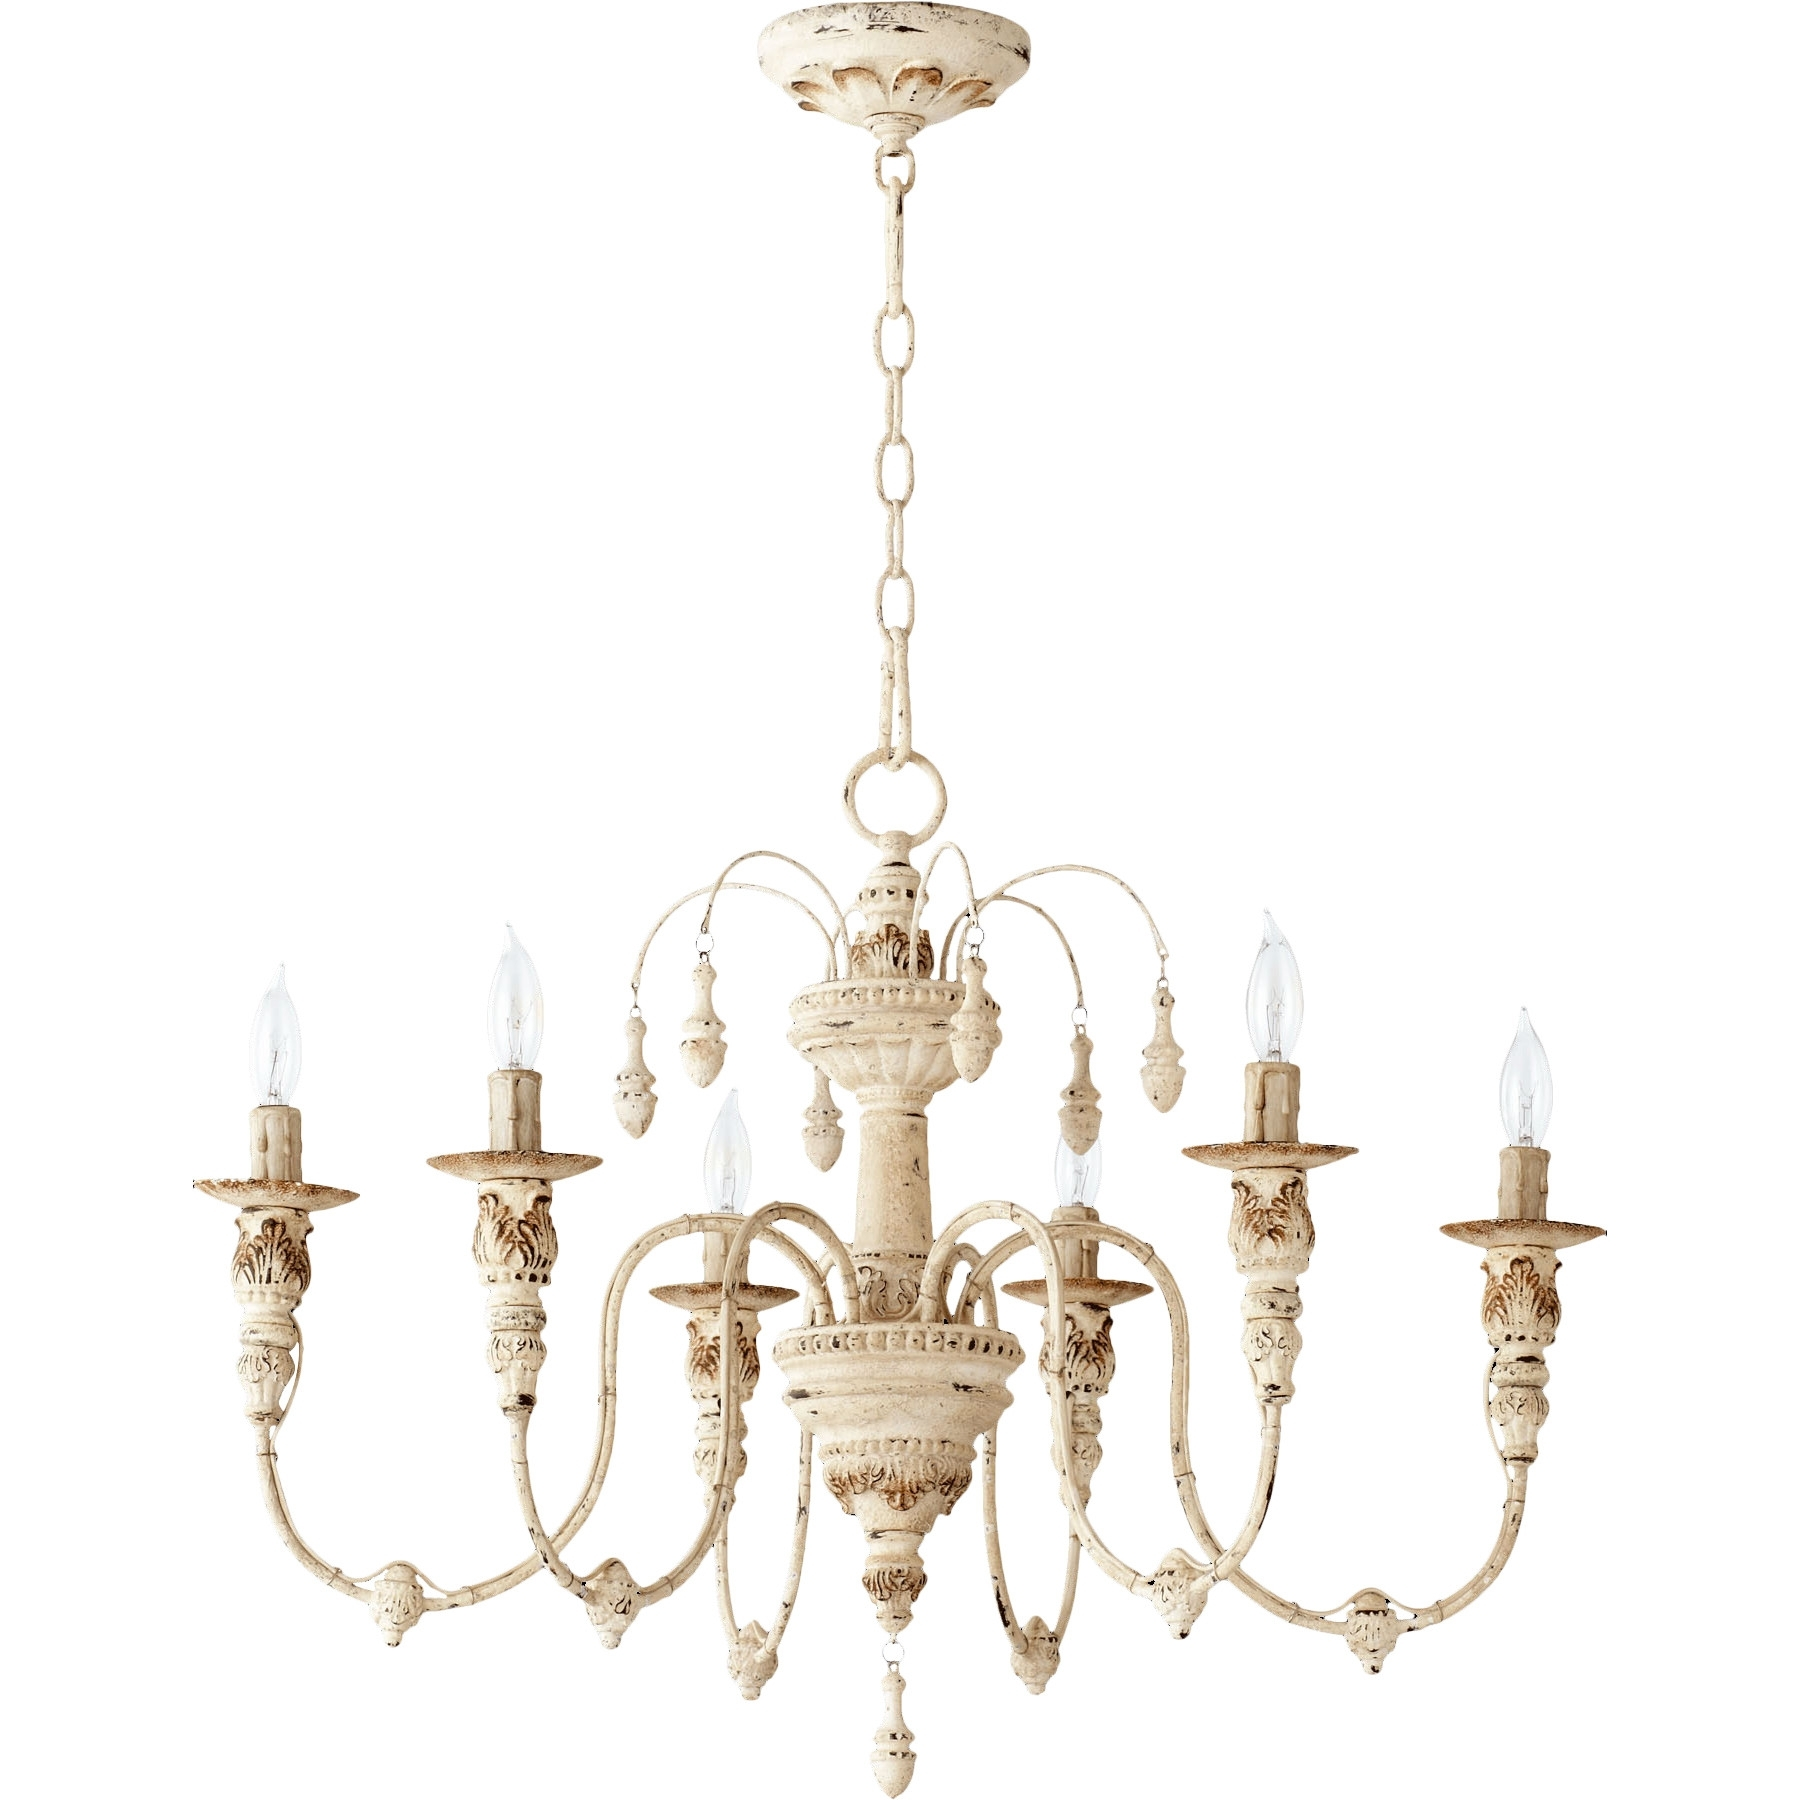 Chandelier (View 3 of 20)